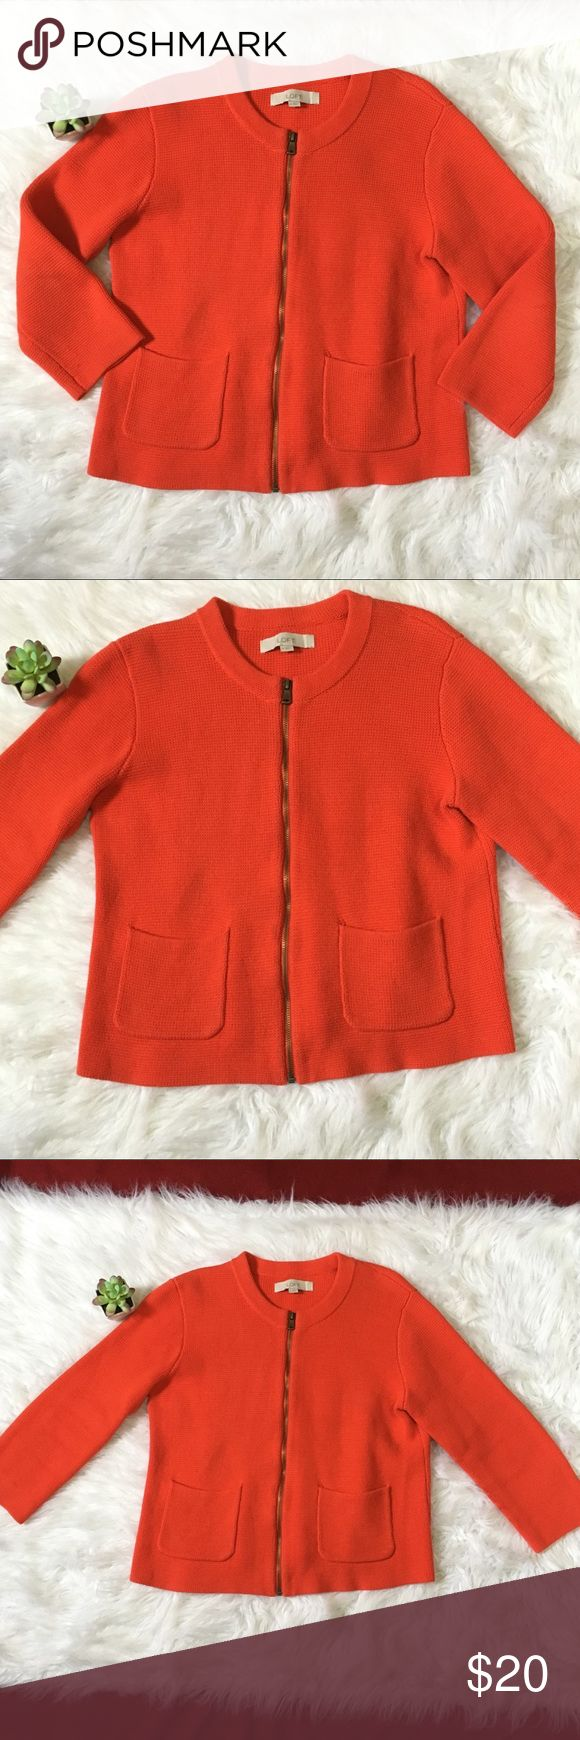 Loft orange zip up knit sweater cardigan LOFT orange zip up heavy sweater/cardigan, 3/4 Sleeve. Women's size Medium. Front pockets , perfect color for fall and thanksgiving ! Excellent pre owned condition. Smoke free pet free home. LOFT Sweaters Cardigans